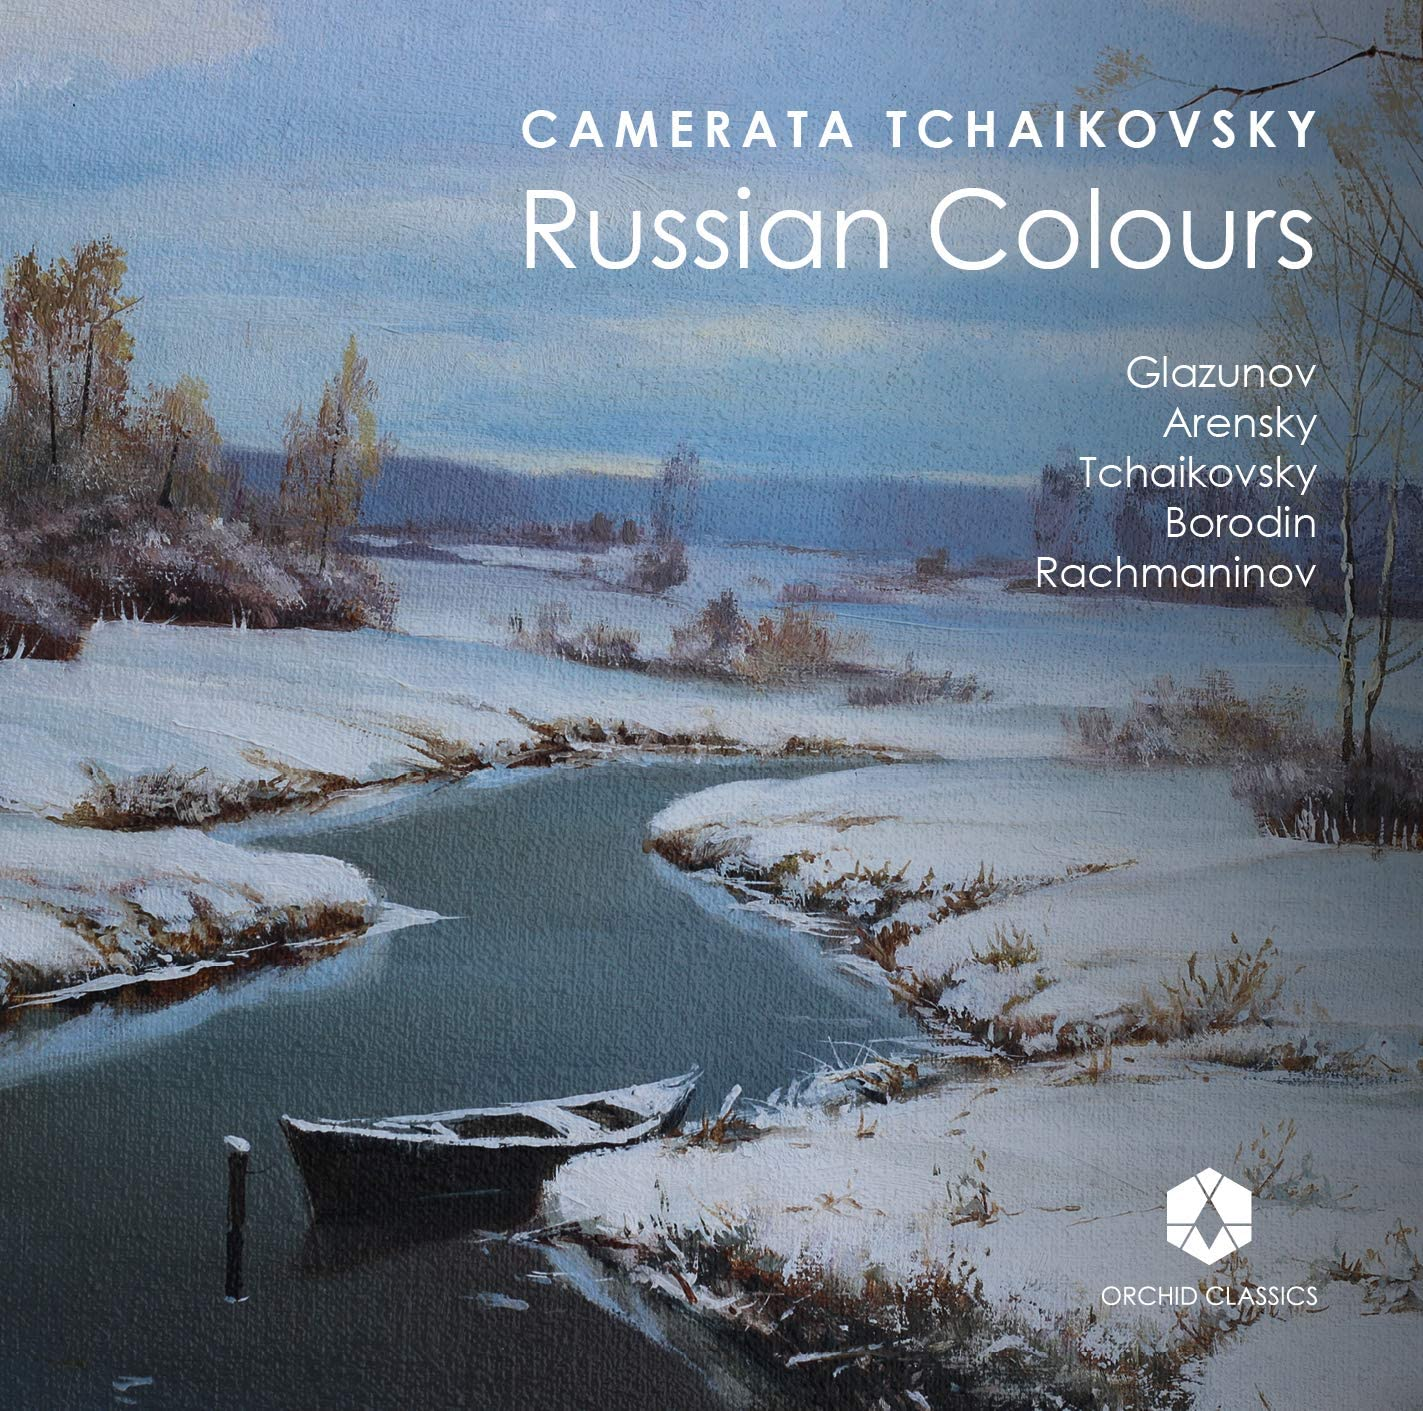 Review of Russian Colours